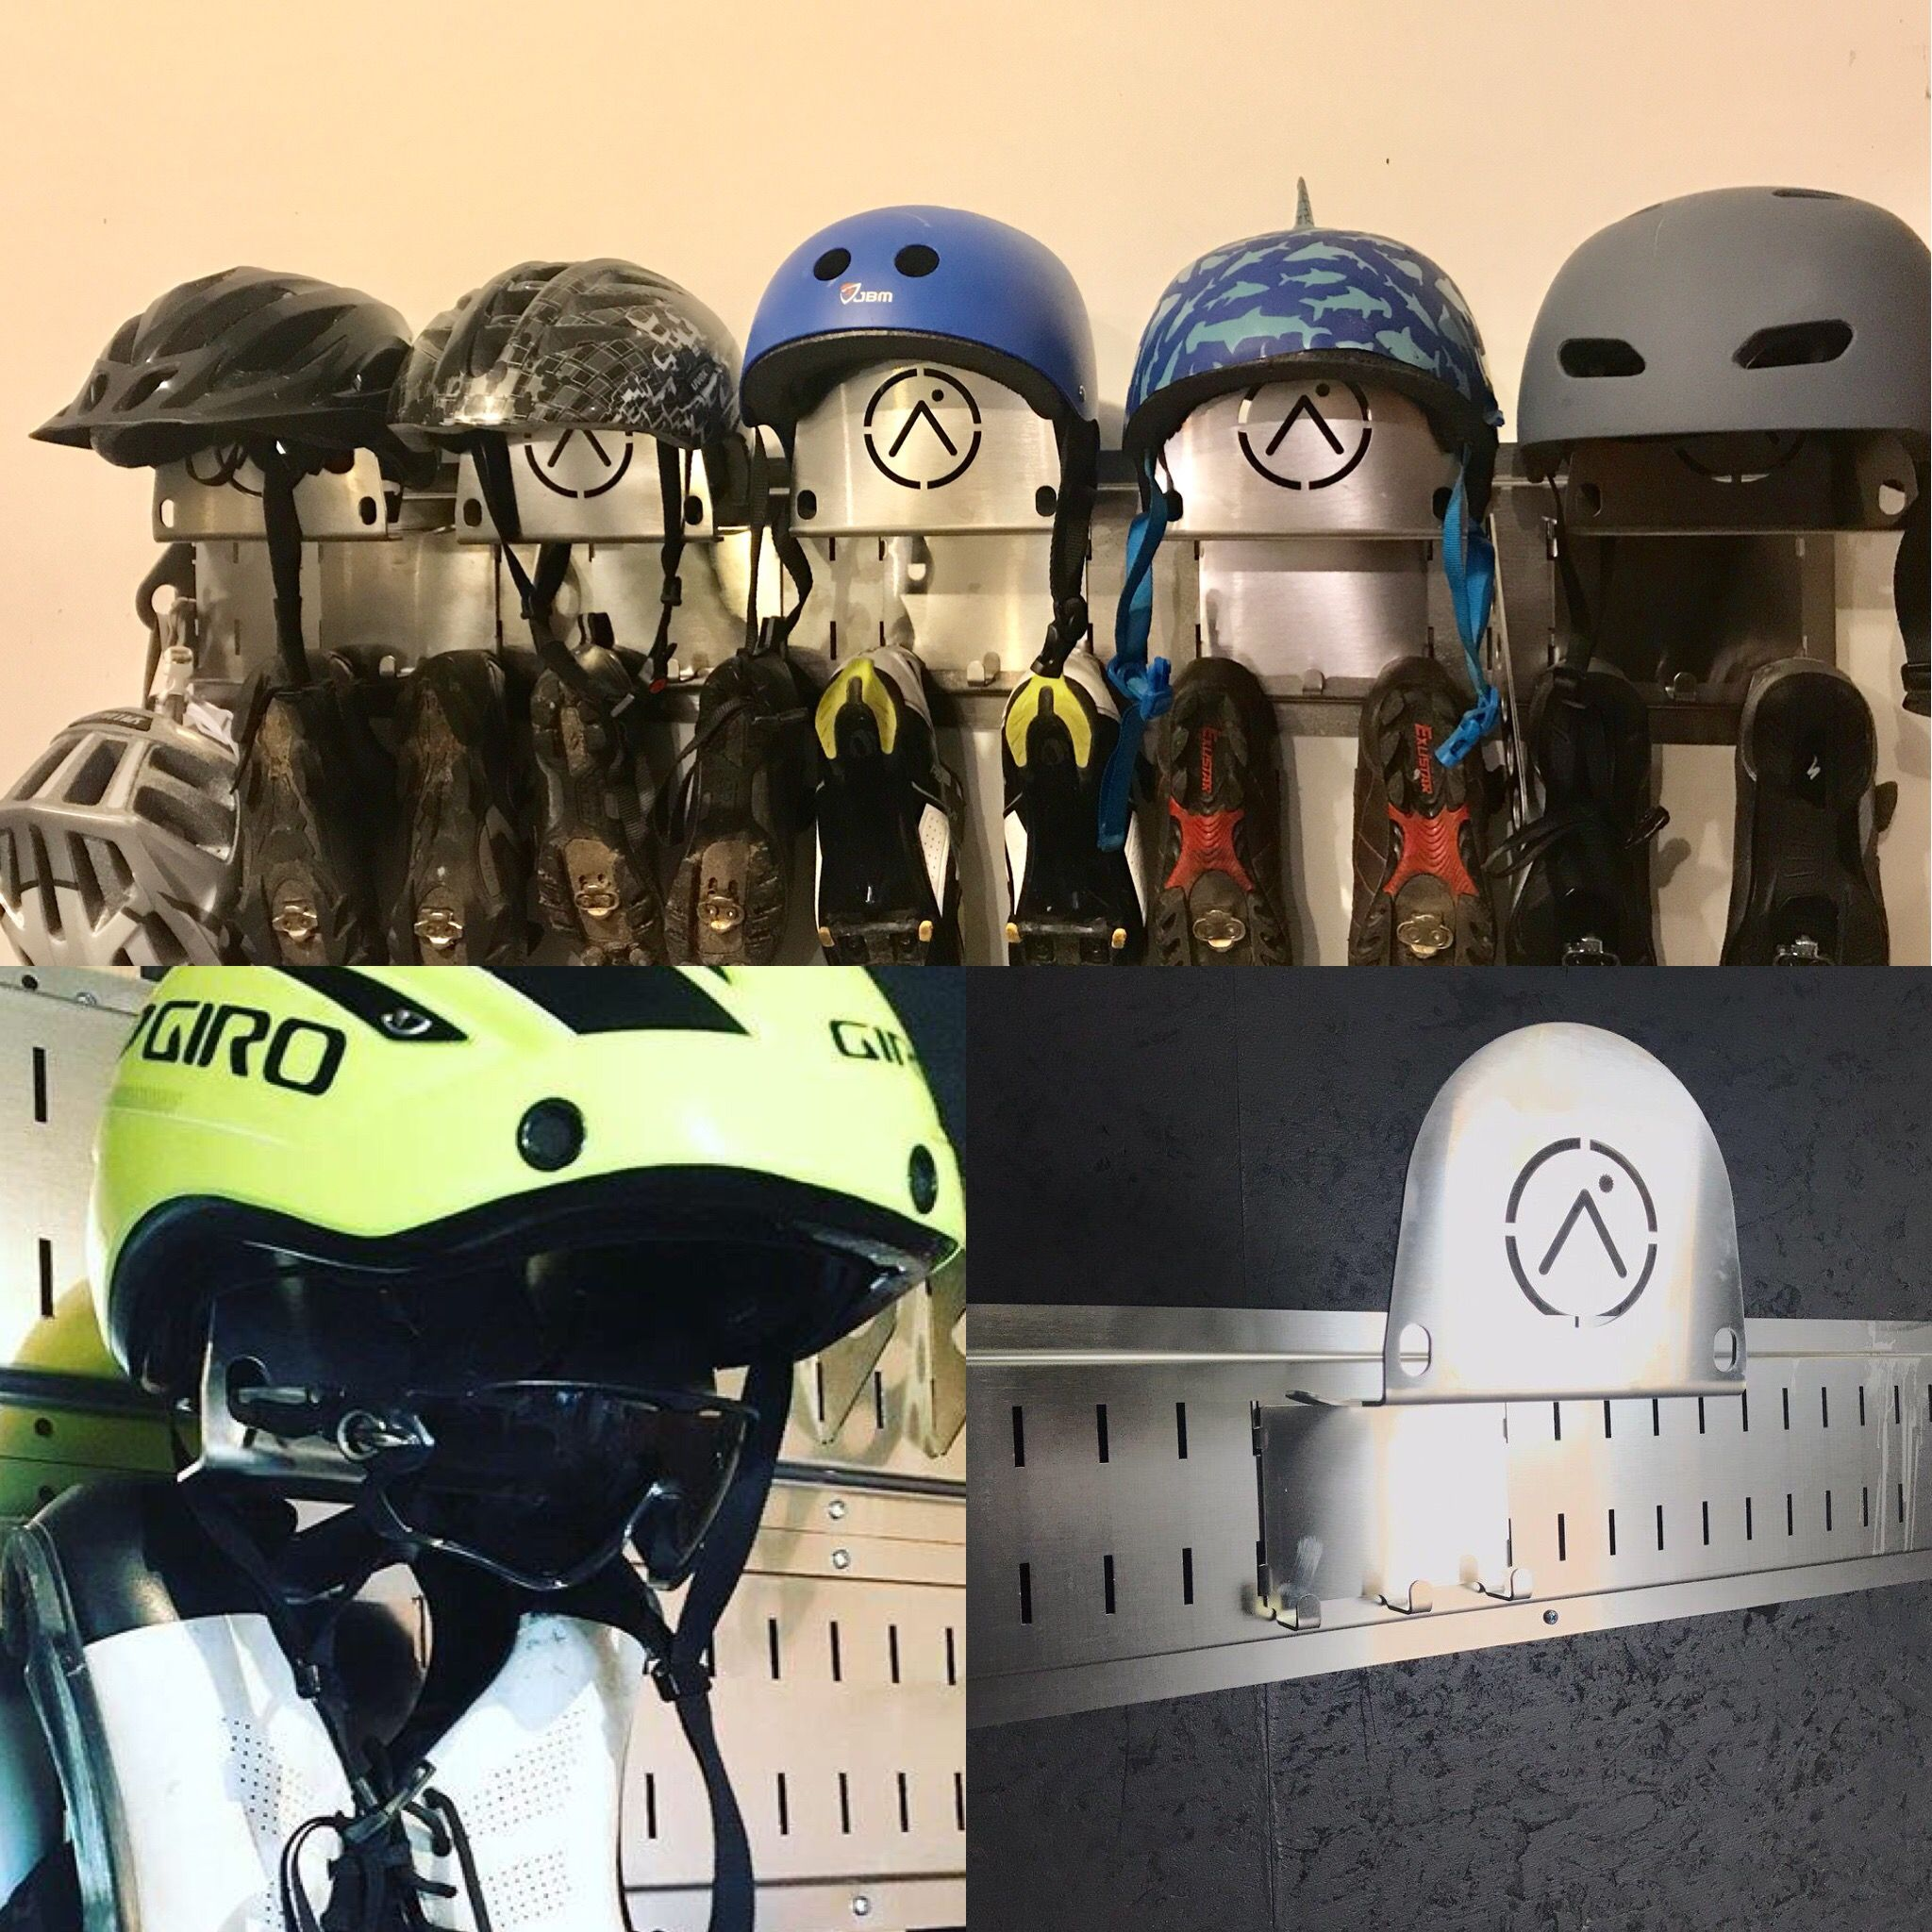 Kit Keeper Bike Storage Systems Bike Helmet Storage Helmet Storage